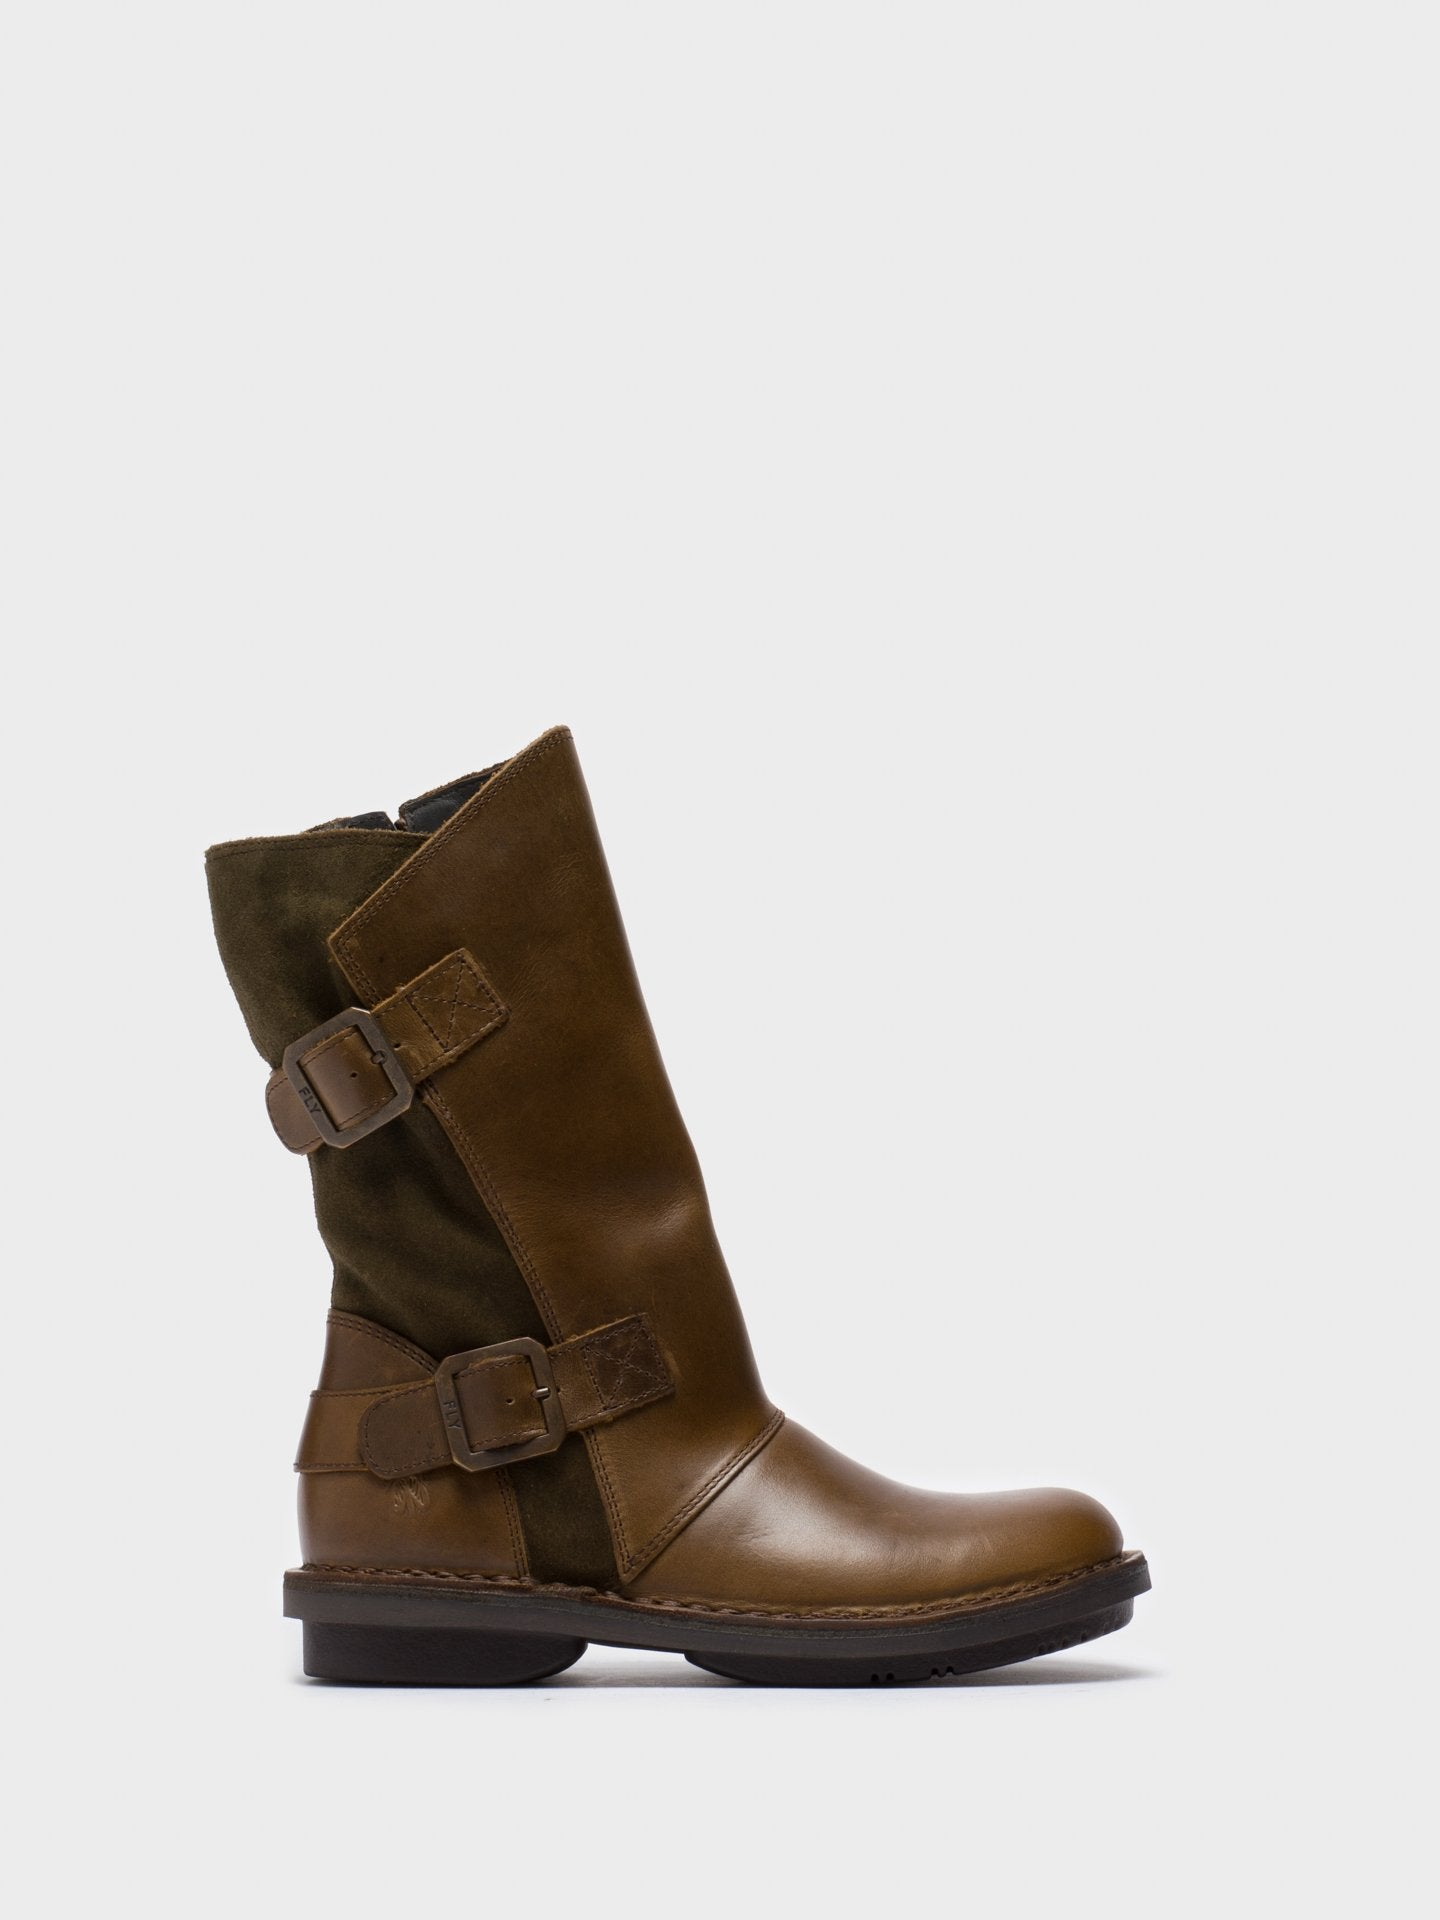 Fly London Olive Zip Up Boots